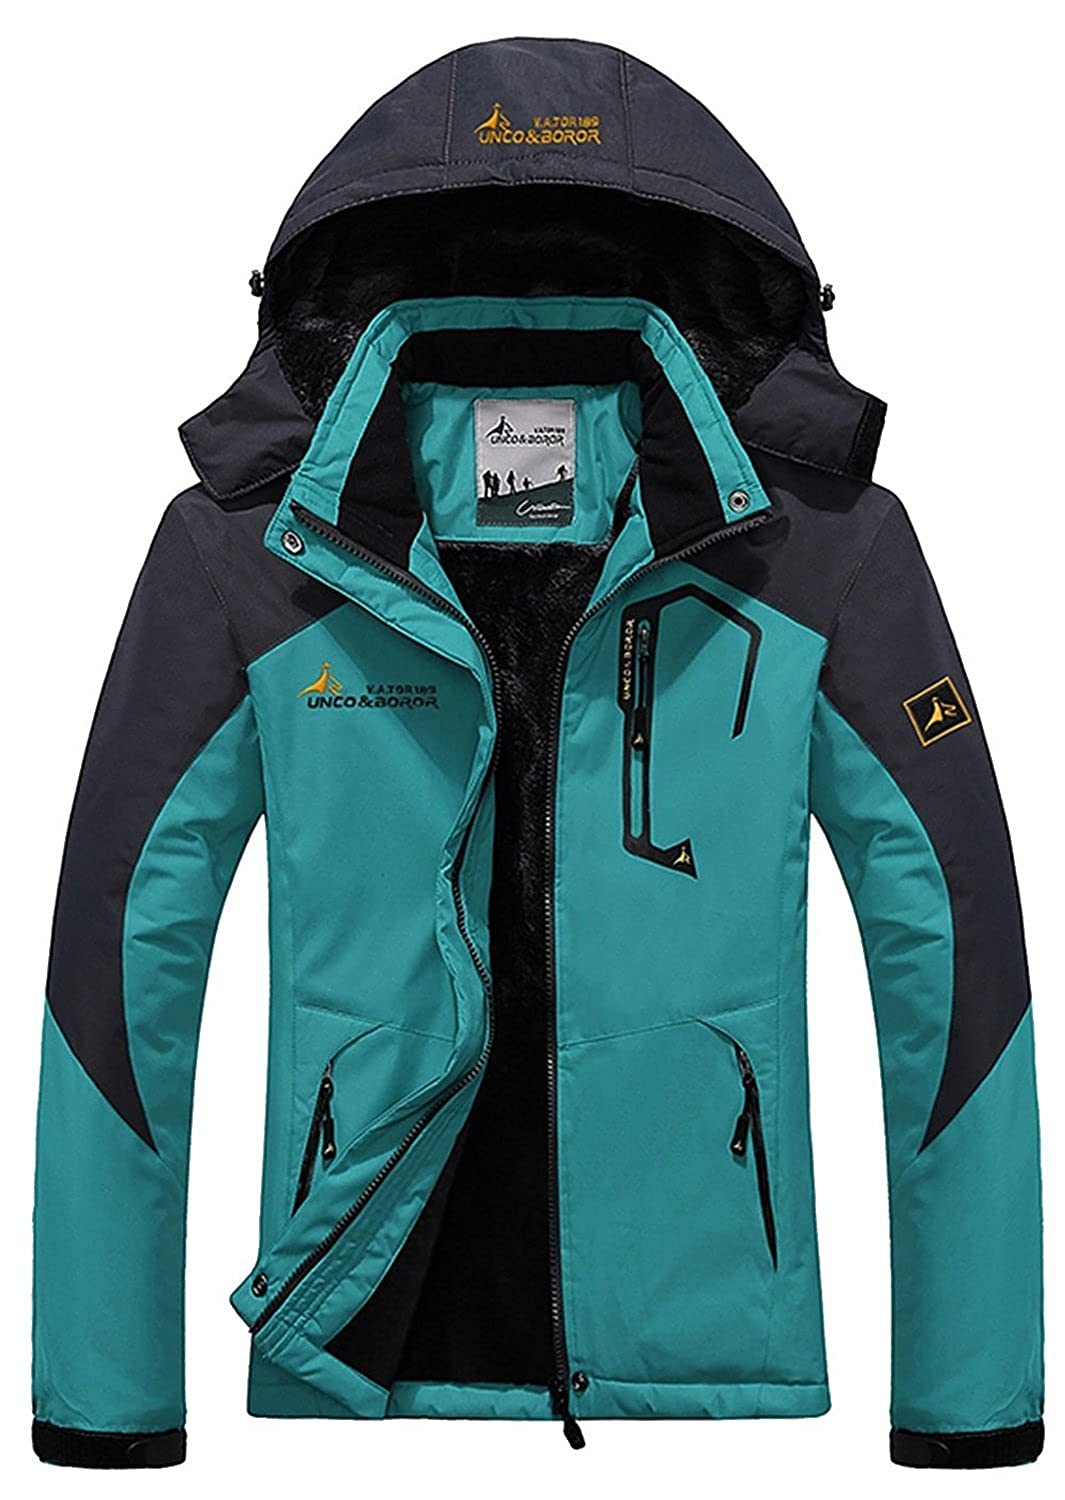 American Trend Women's Waterproof Mountain Jacket Fleece Hooded Ski Jacket American Trends ACAS0425C0000